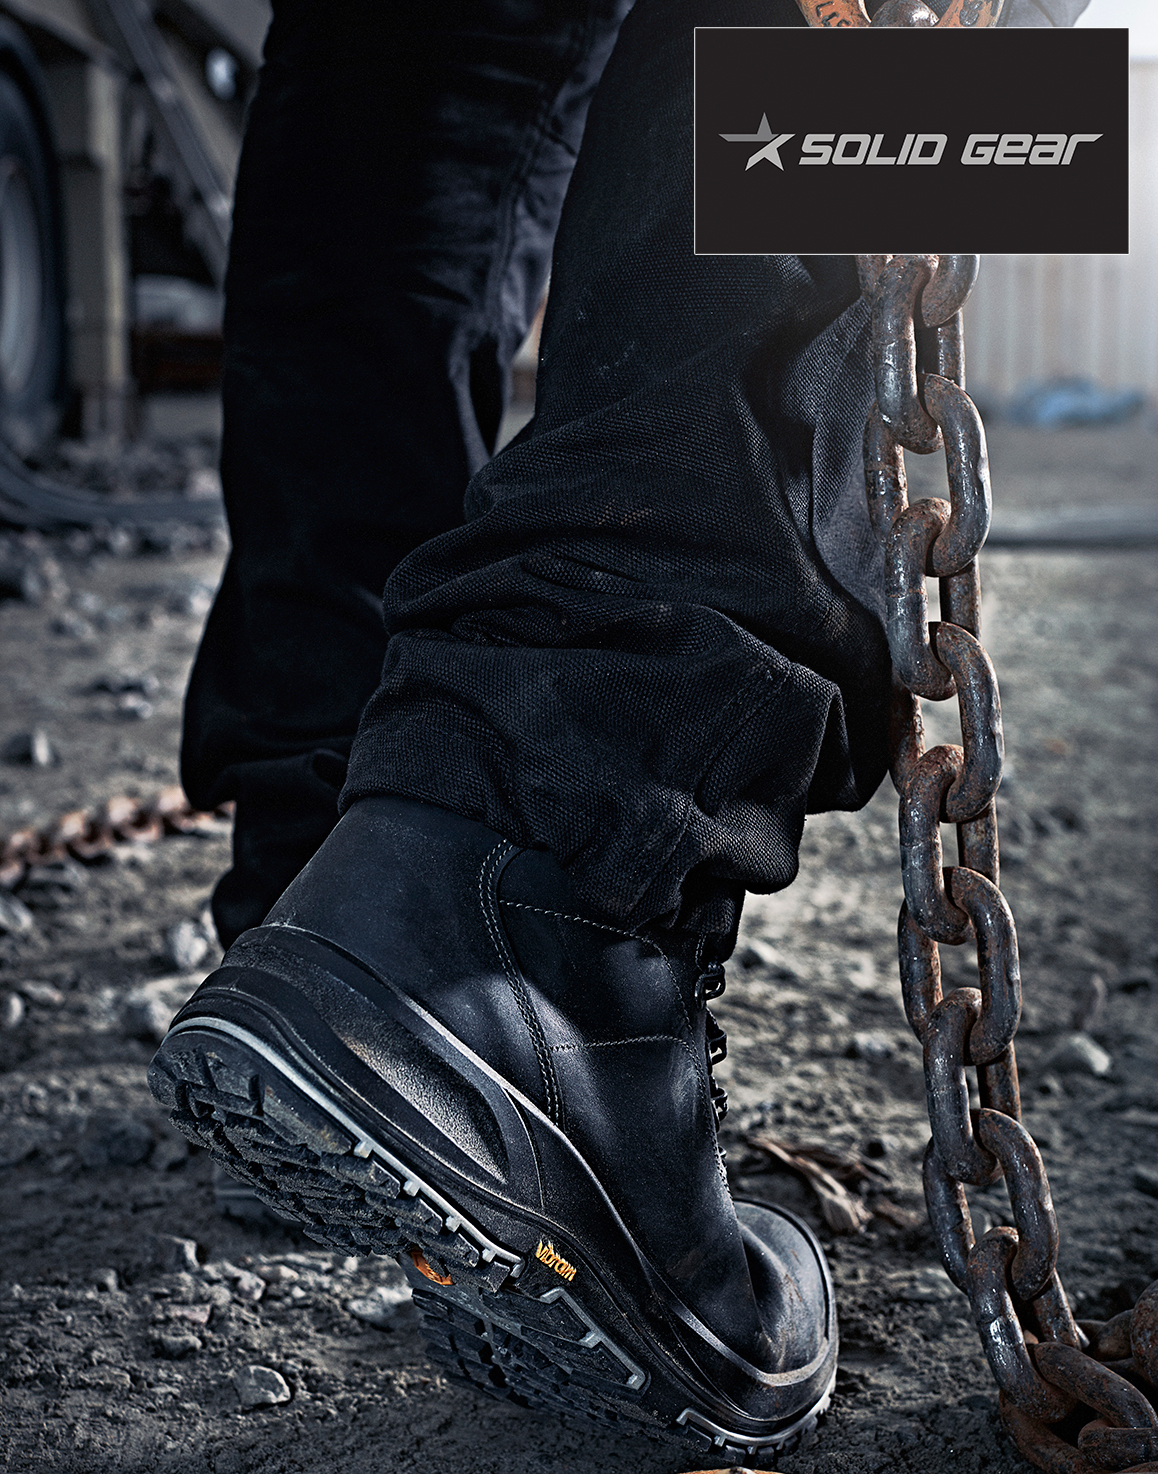 Win a pair of Solid Gear boots